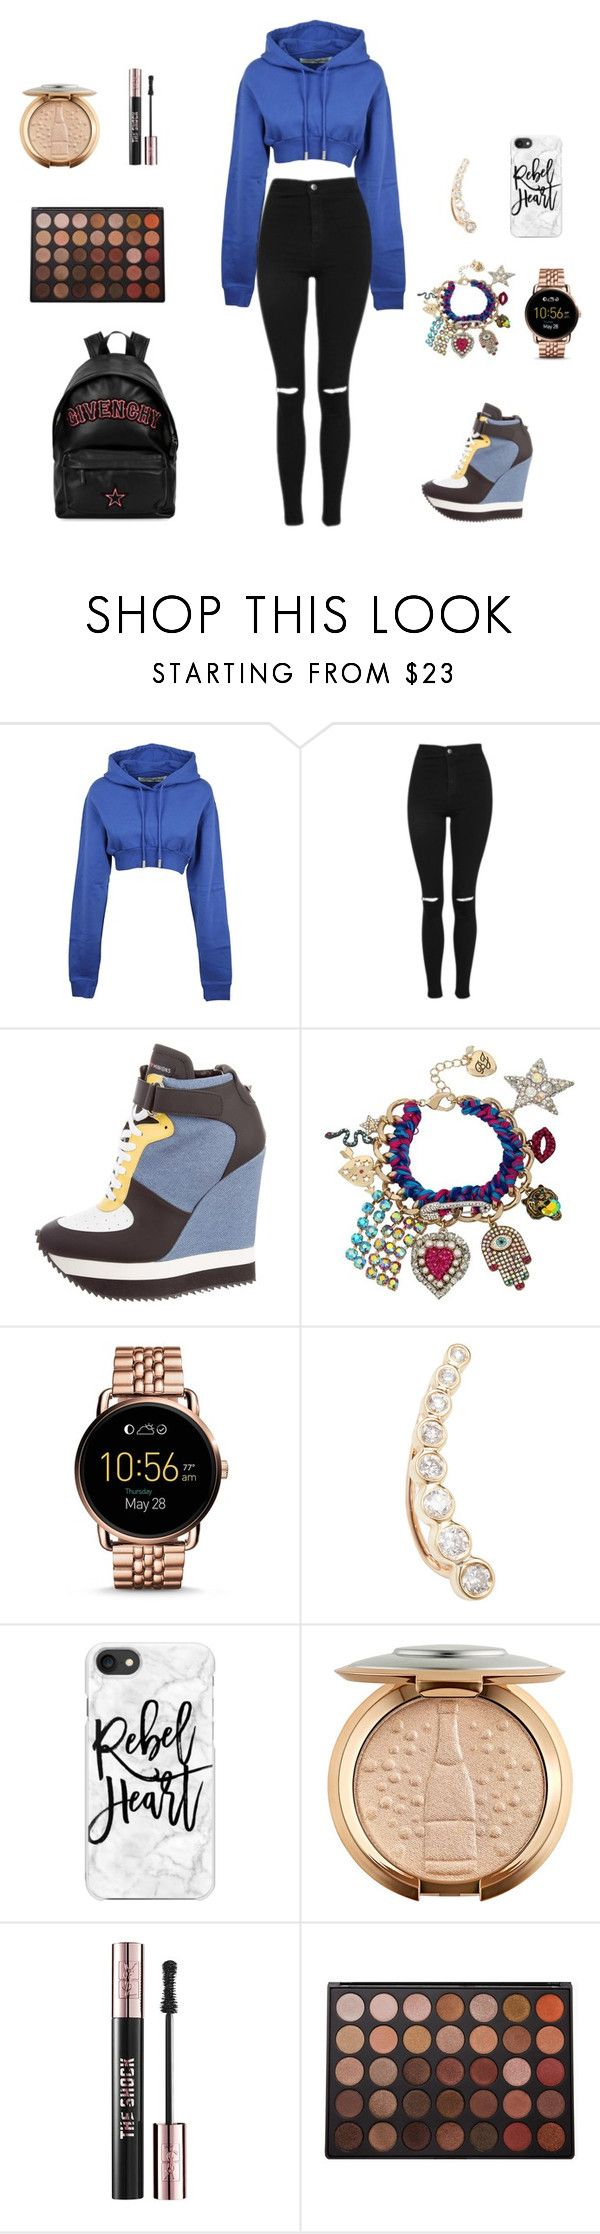 """Untitled #486"" by mriechou ❤ liked on Polyvore featuring Off-White, Topshop, Ruthie Davis, Betsey Johnson, FOSSIL, Shay, Casetify, Yves Saint Laurent, Morphe and Givenchy"